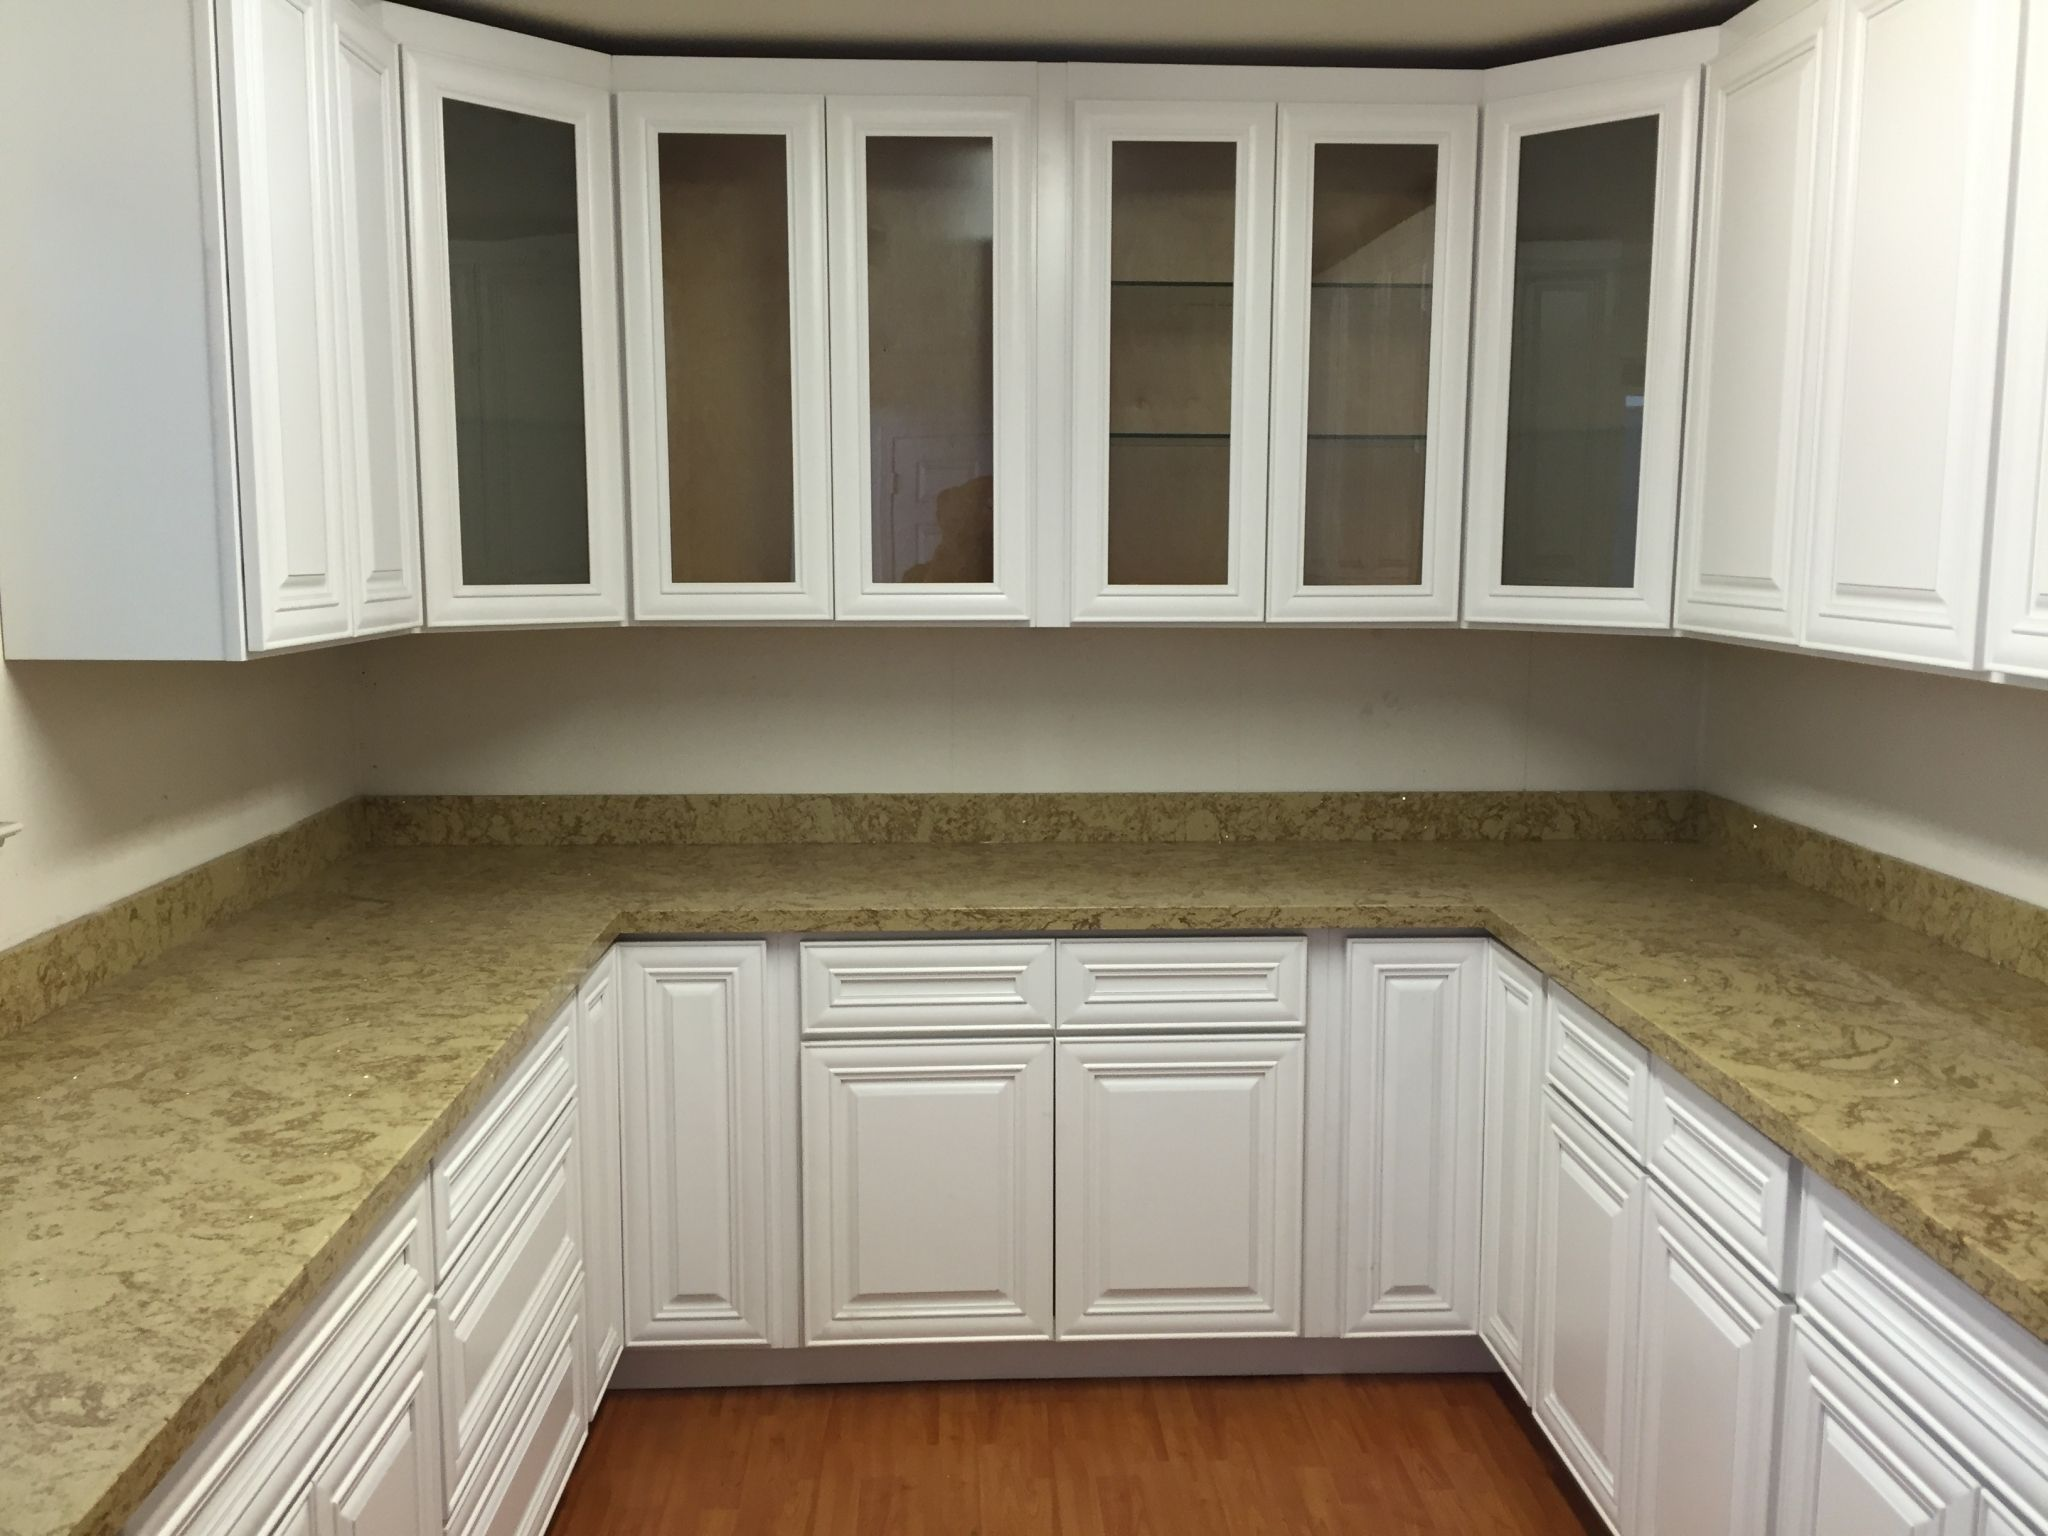 raised kitchen cabinets custom kitchen island ideas Check more